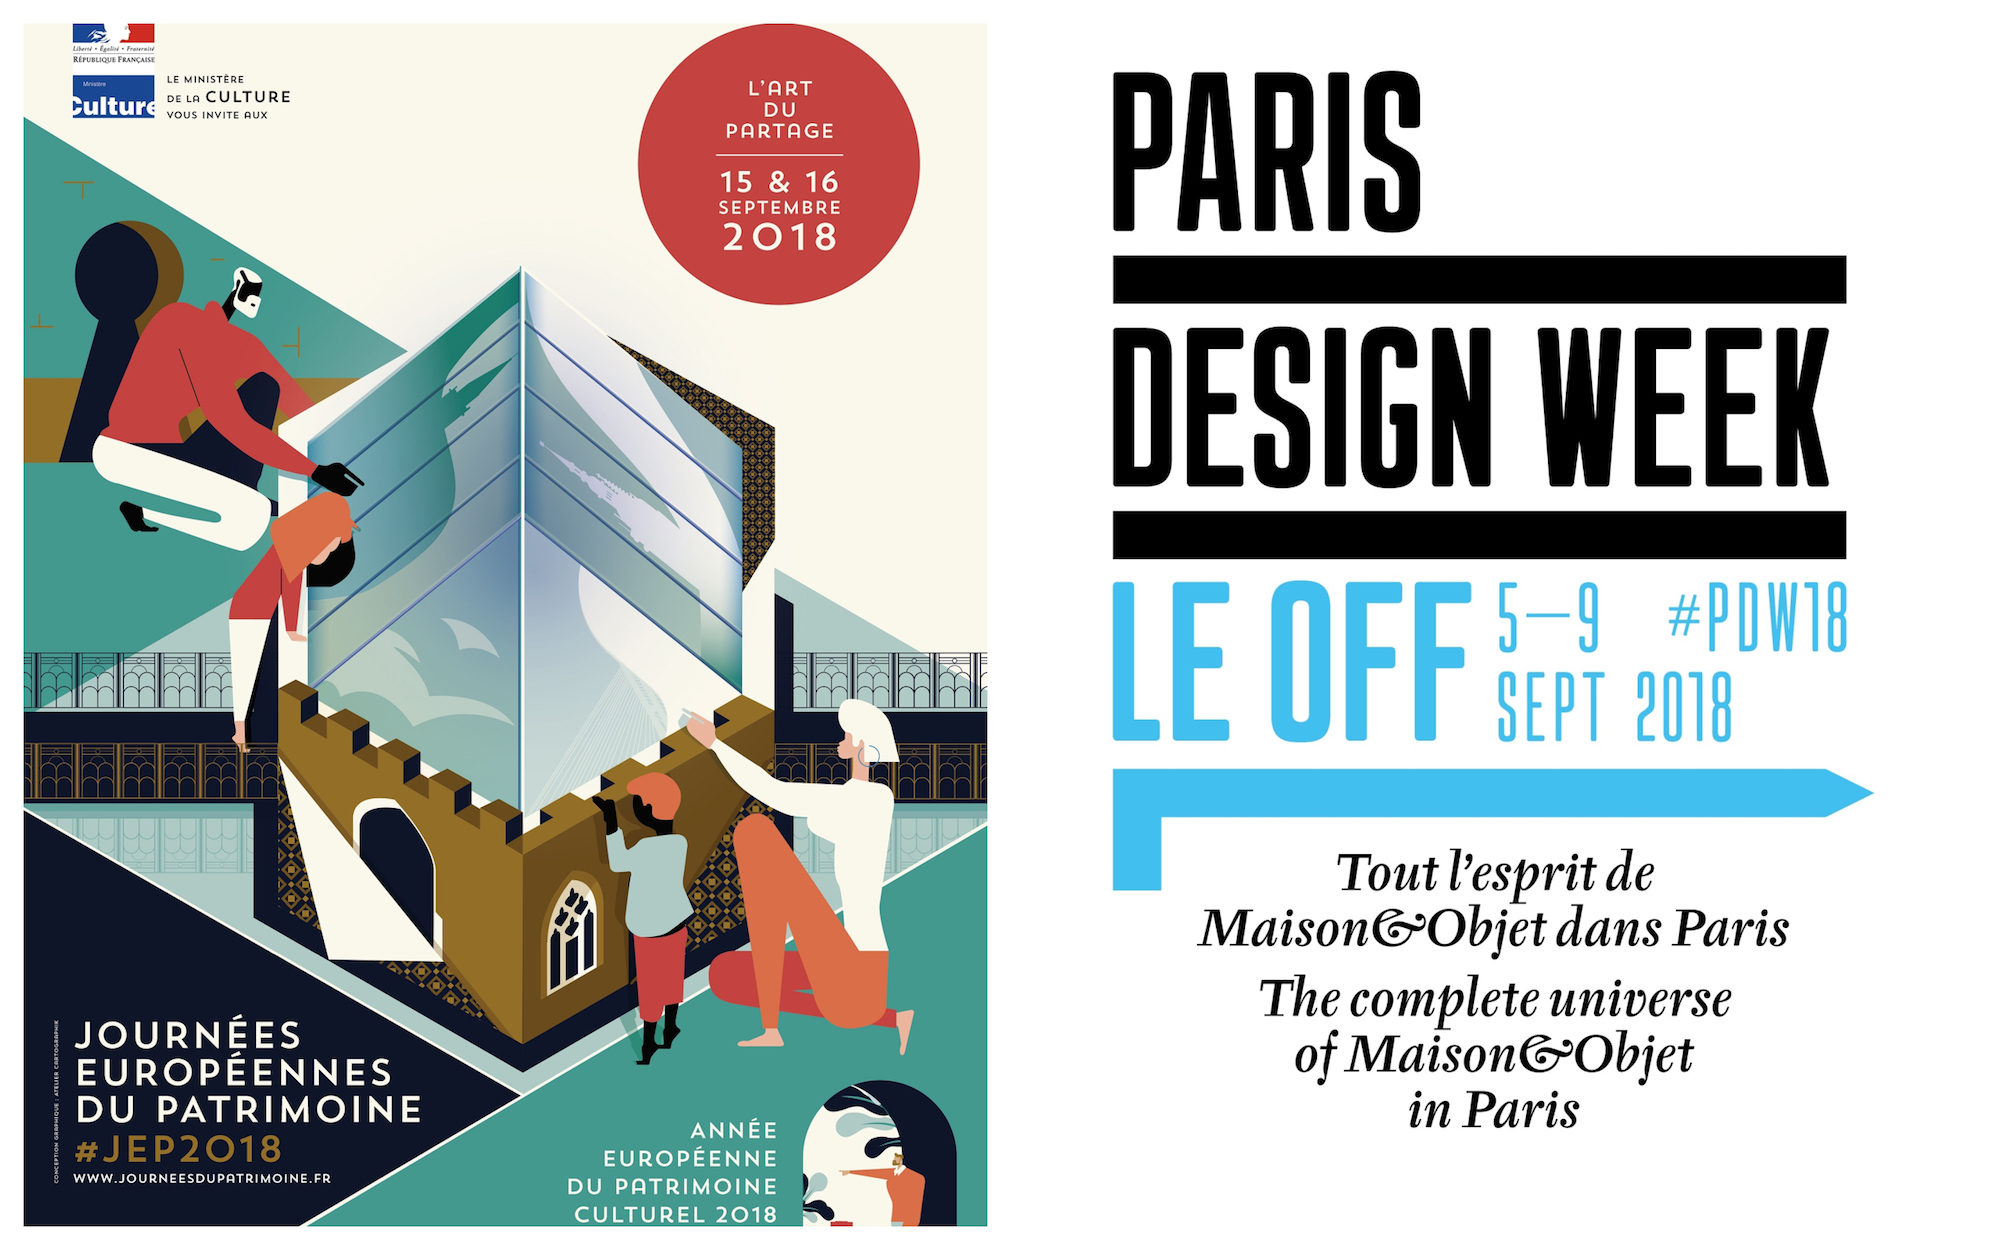 A poster for September events in Paris like the Paris Heritage Days (left) and satellite events for Paris Design Week (right).